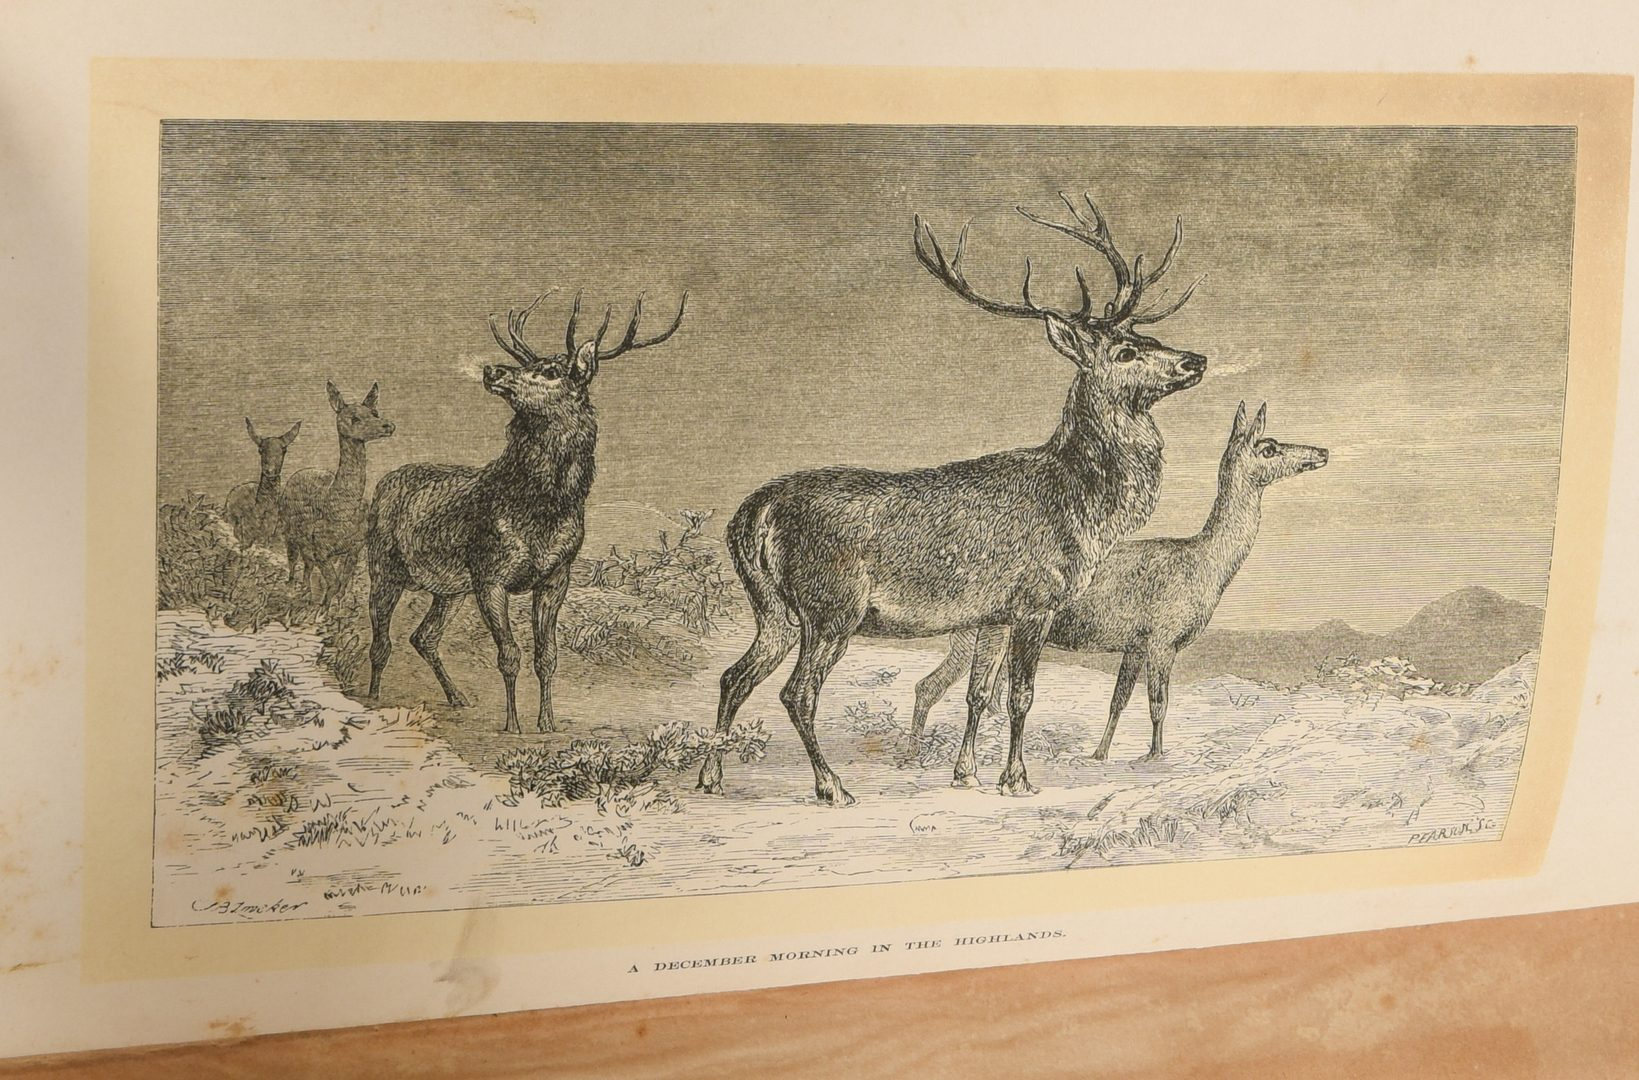 Lot 896: 5 Hunting and Fishing Books, 19th c.